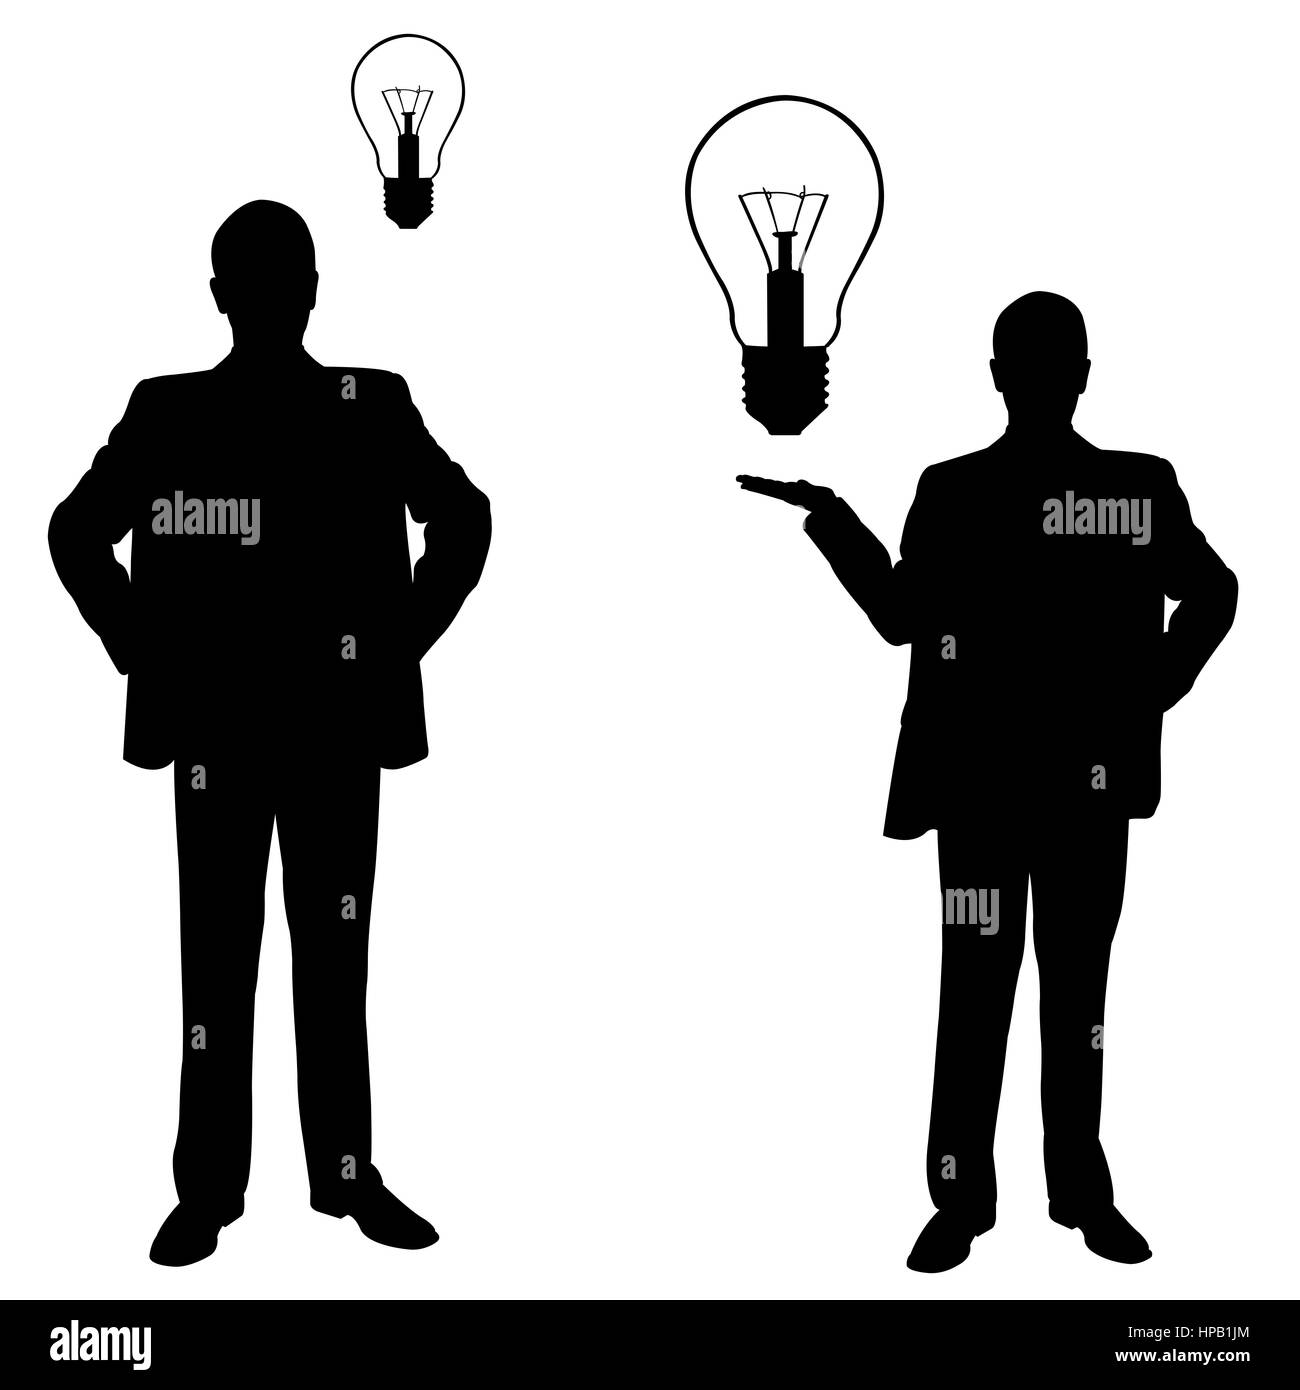 Silhouettes of men with light bulbs isolated on white - Stock Image